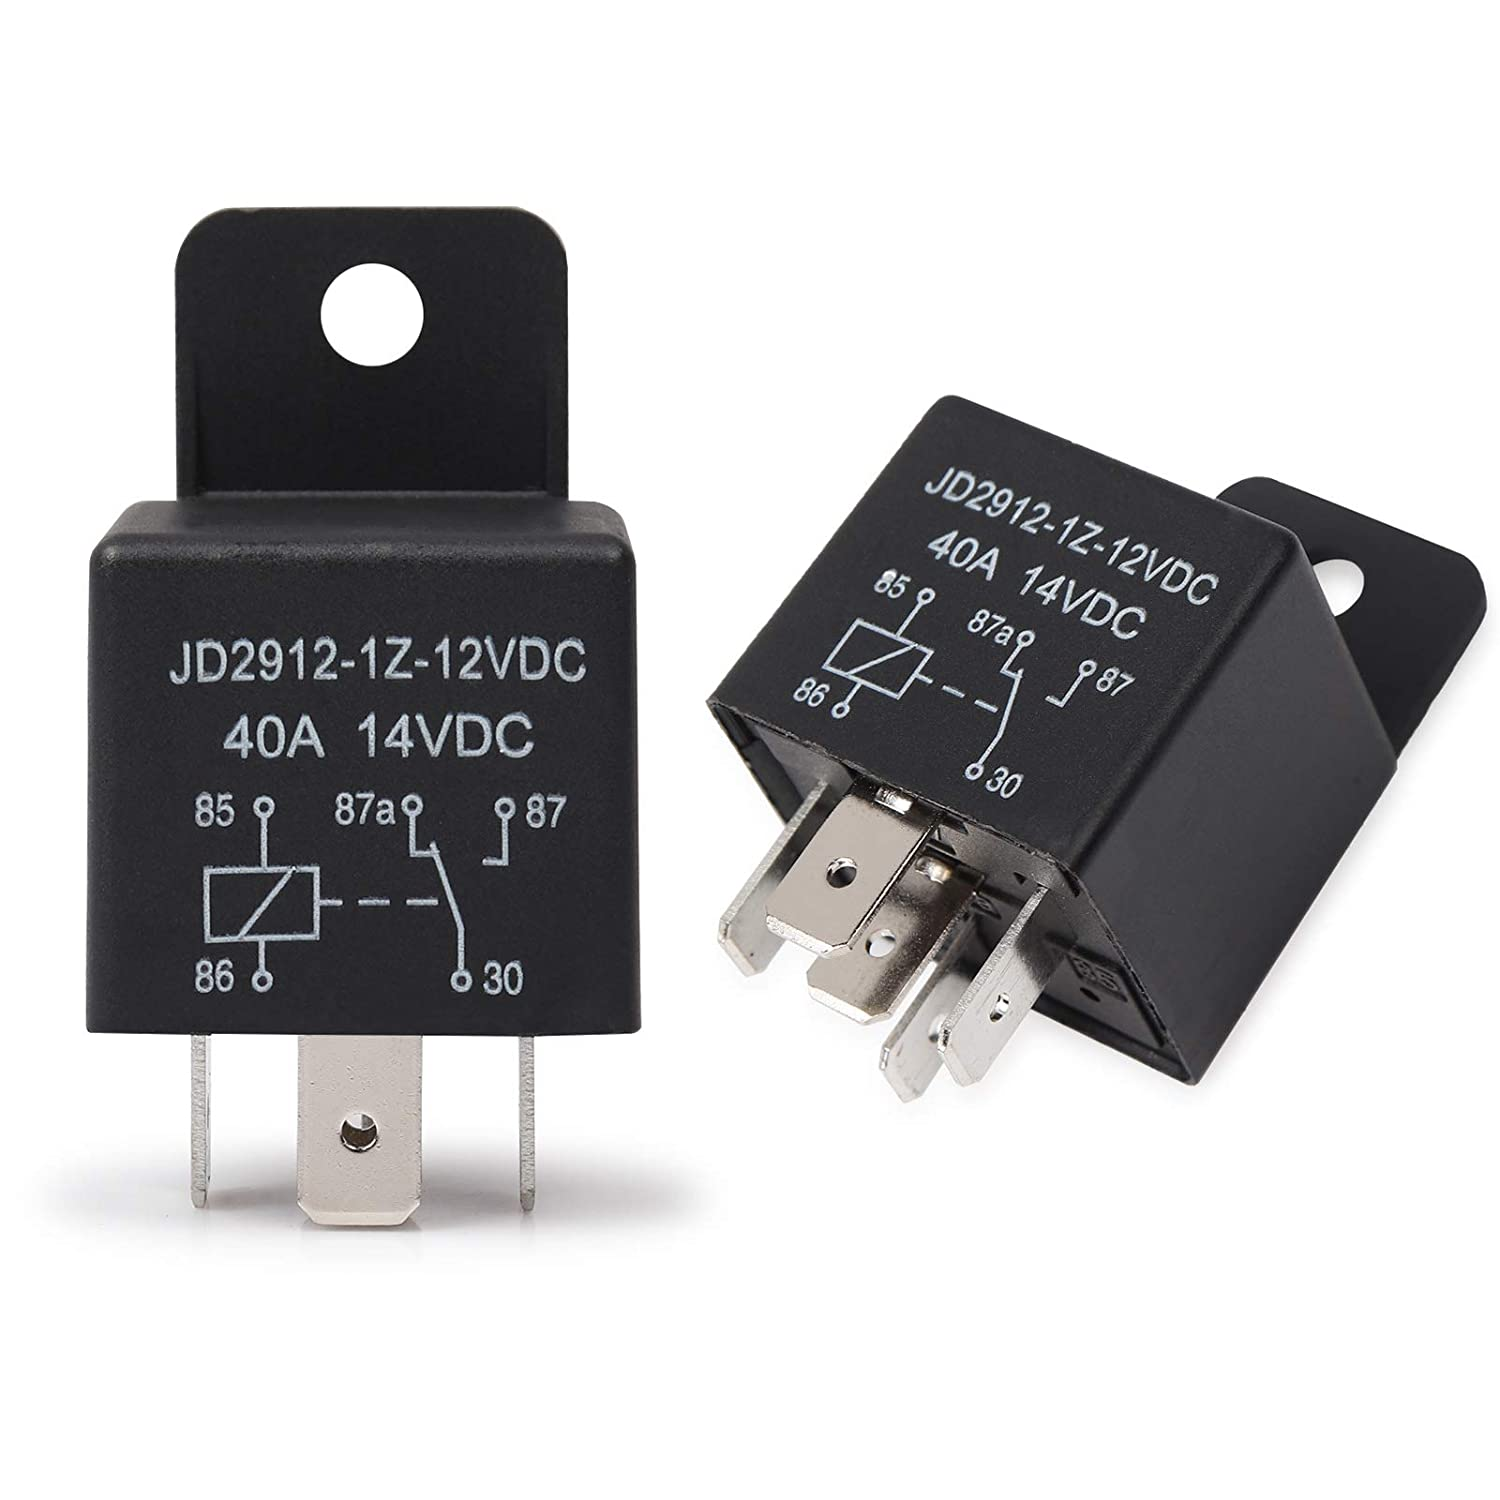 Auto Switches /& Starters Ehdis/® Motor Relay 5 Pin 24V Coil 40amp Spdt Model No.: JD2912-1Z-24VDC 40A 28VDC Contactor Relay Switch Power 10 Pack